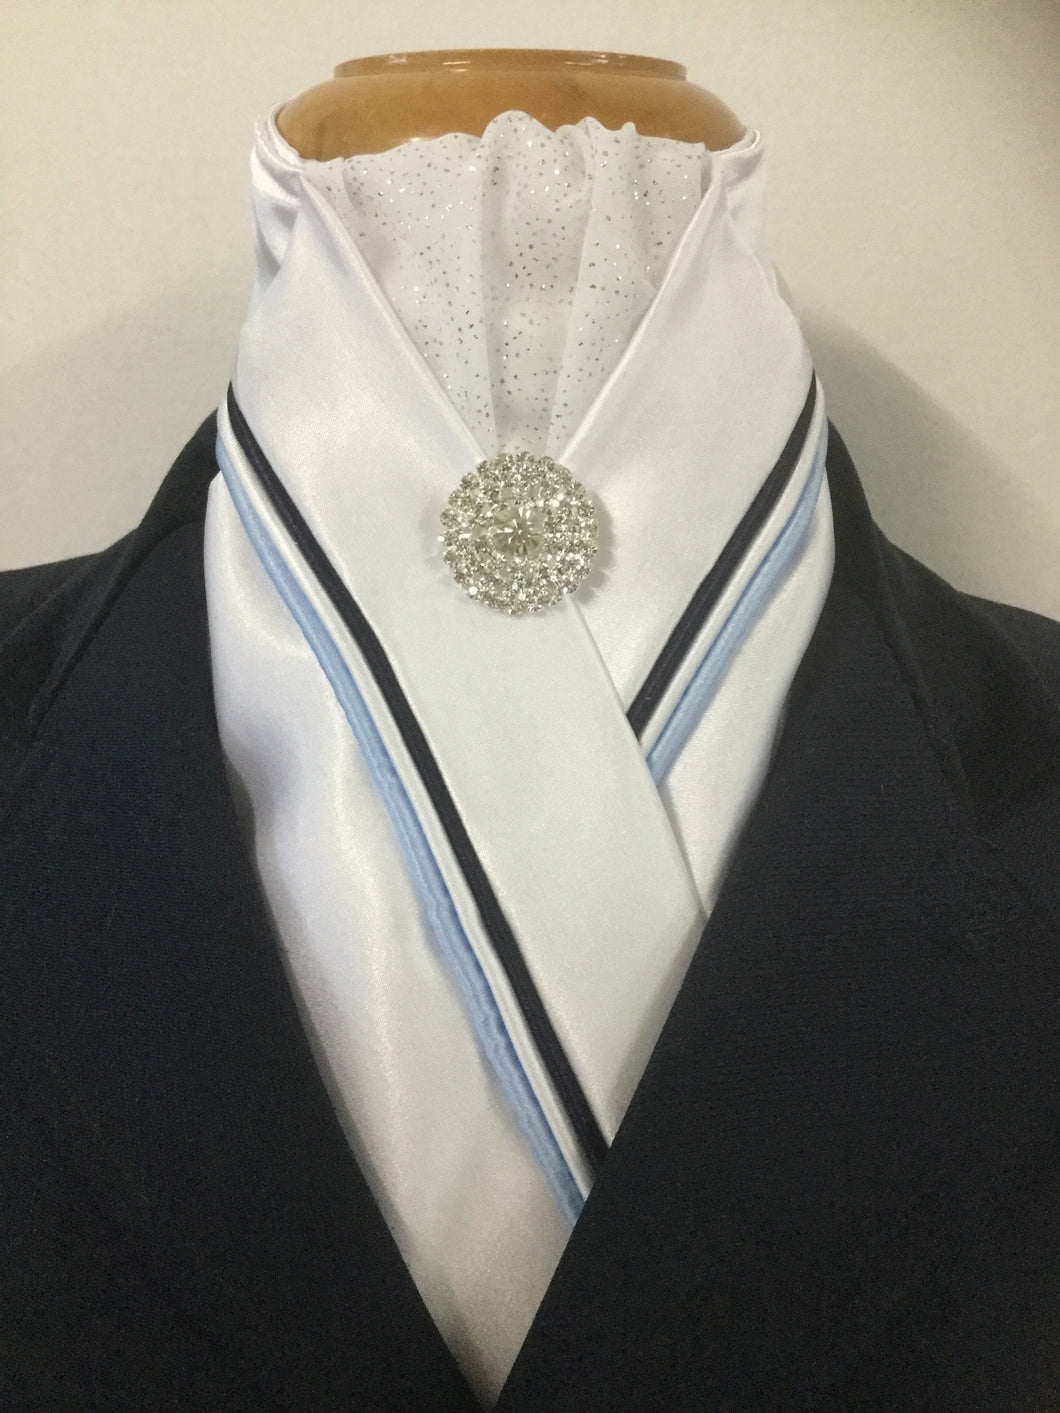 HHD White Custom Stock Tie Triple Piping in Navy, Light Blue & White